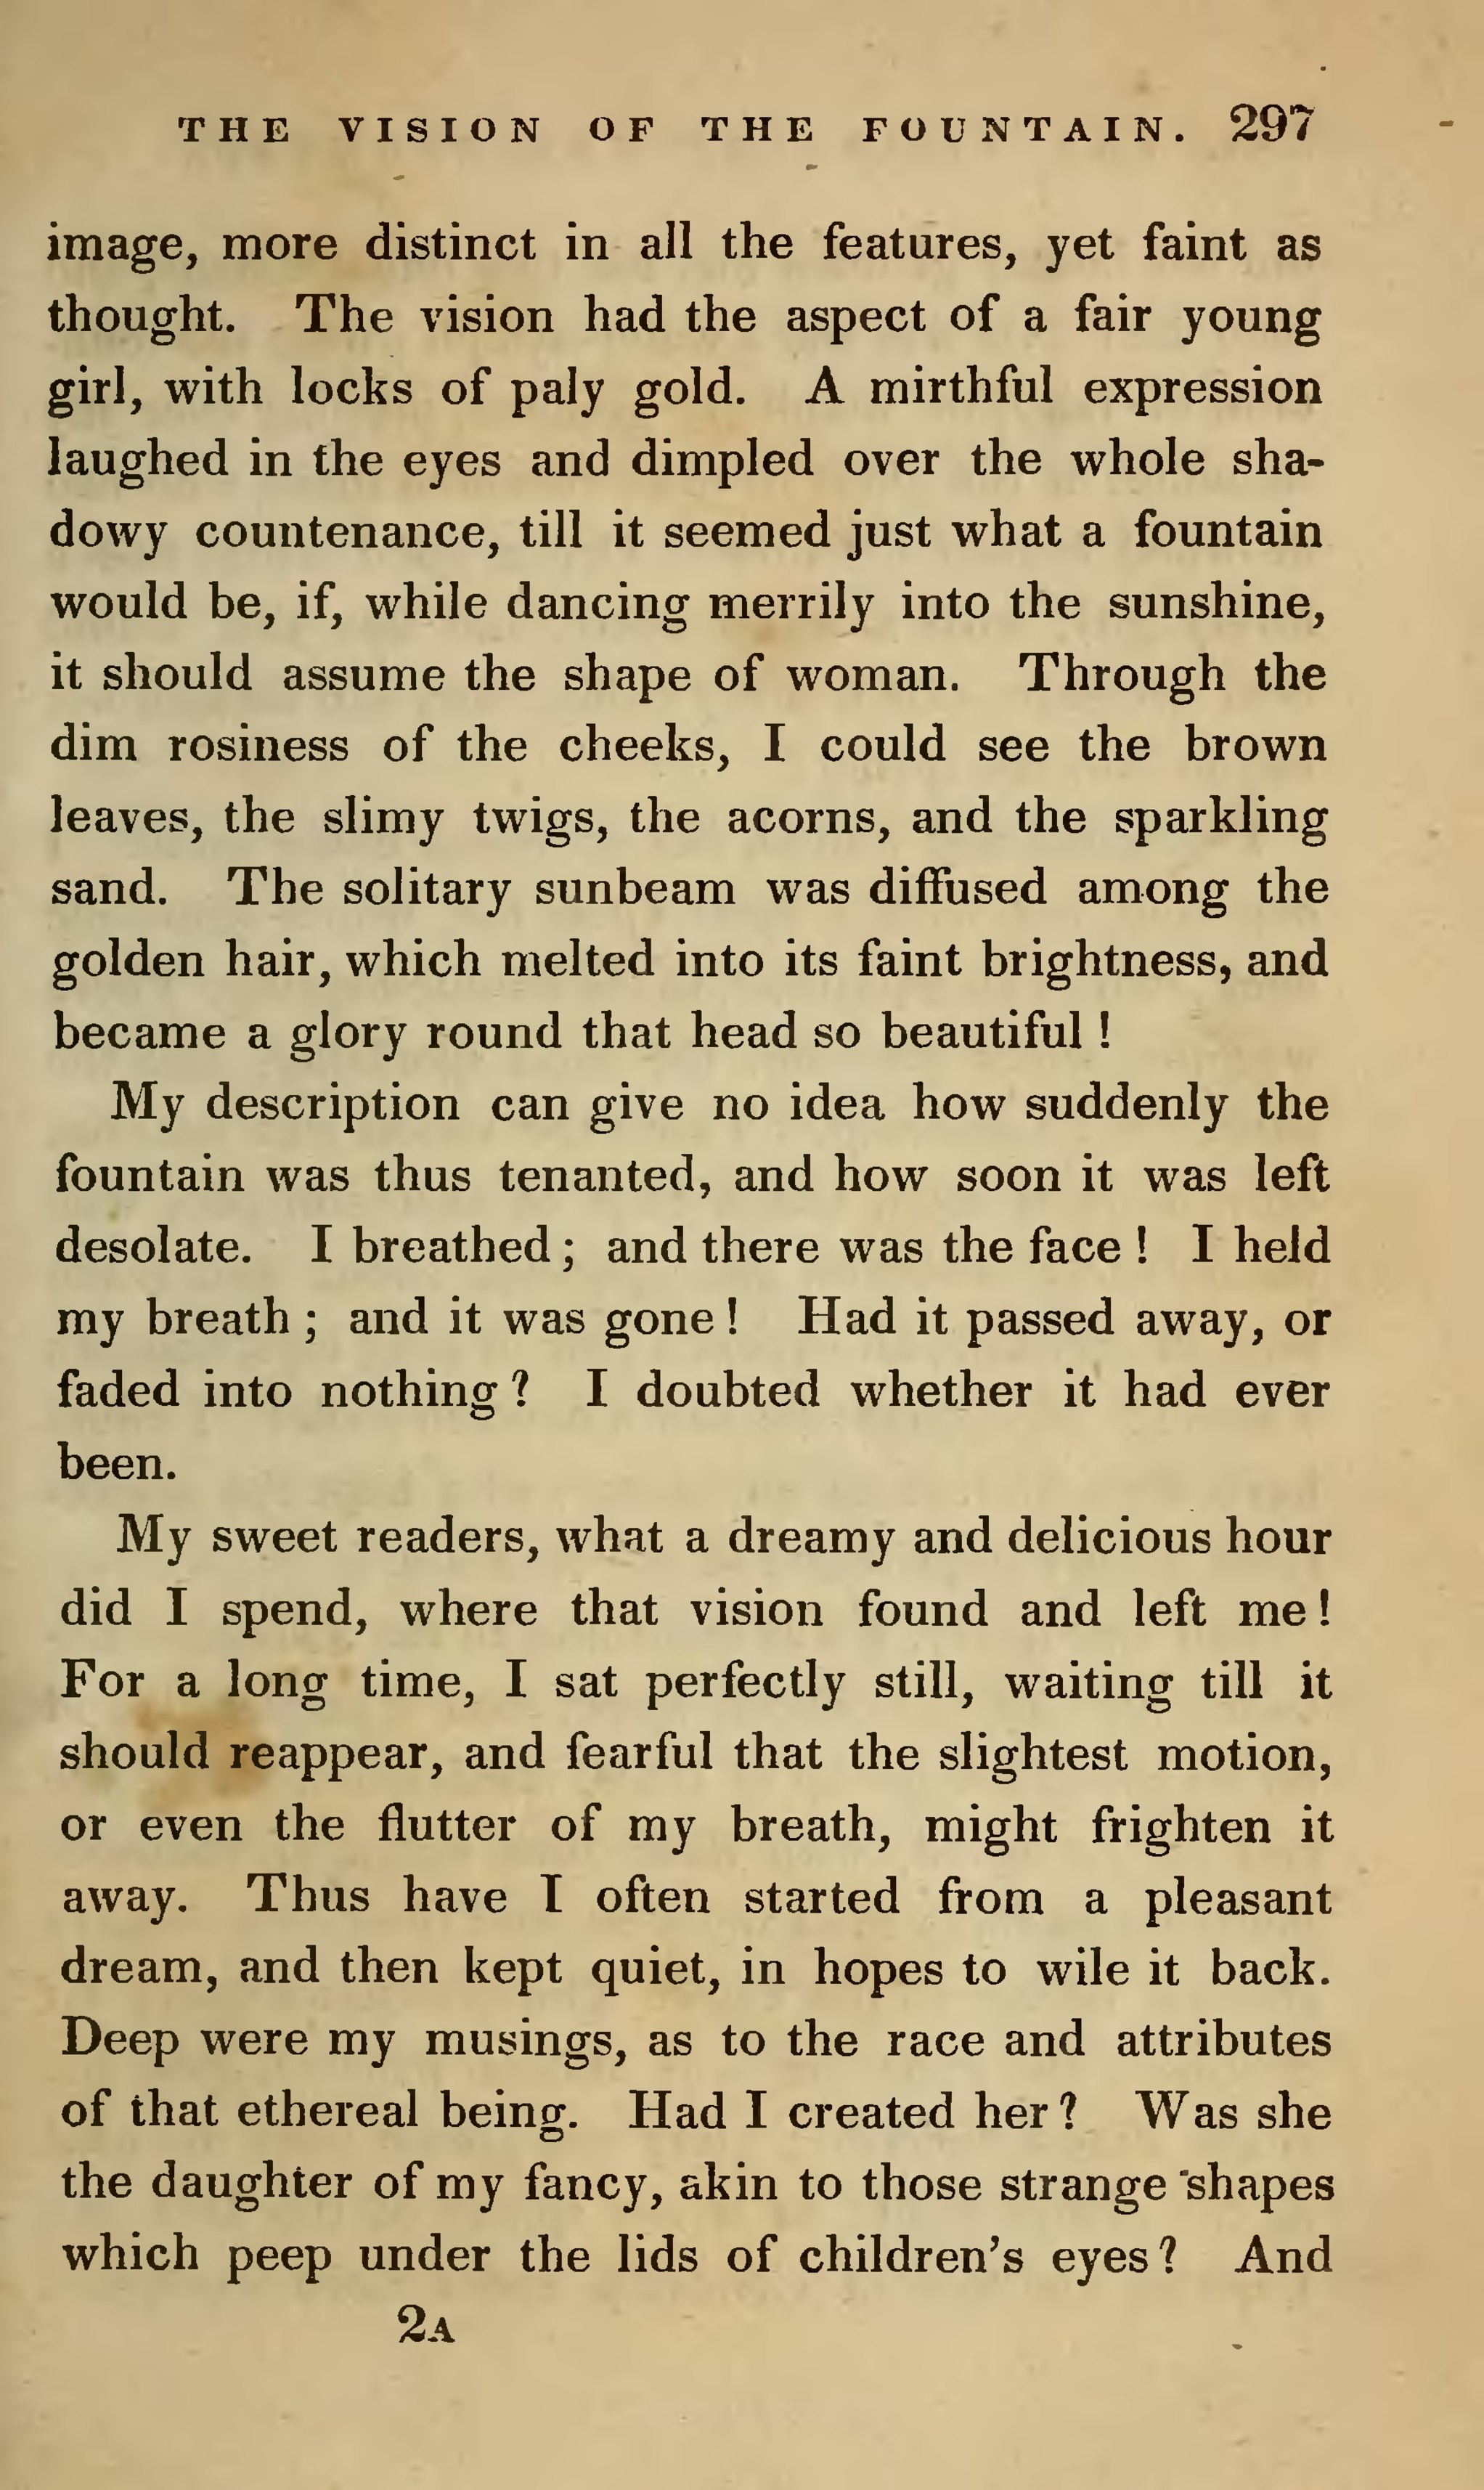 The Vision of the Fountain (From Twice Told Tales)